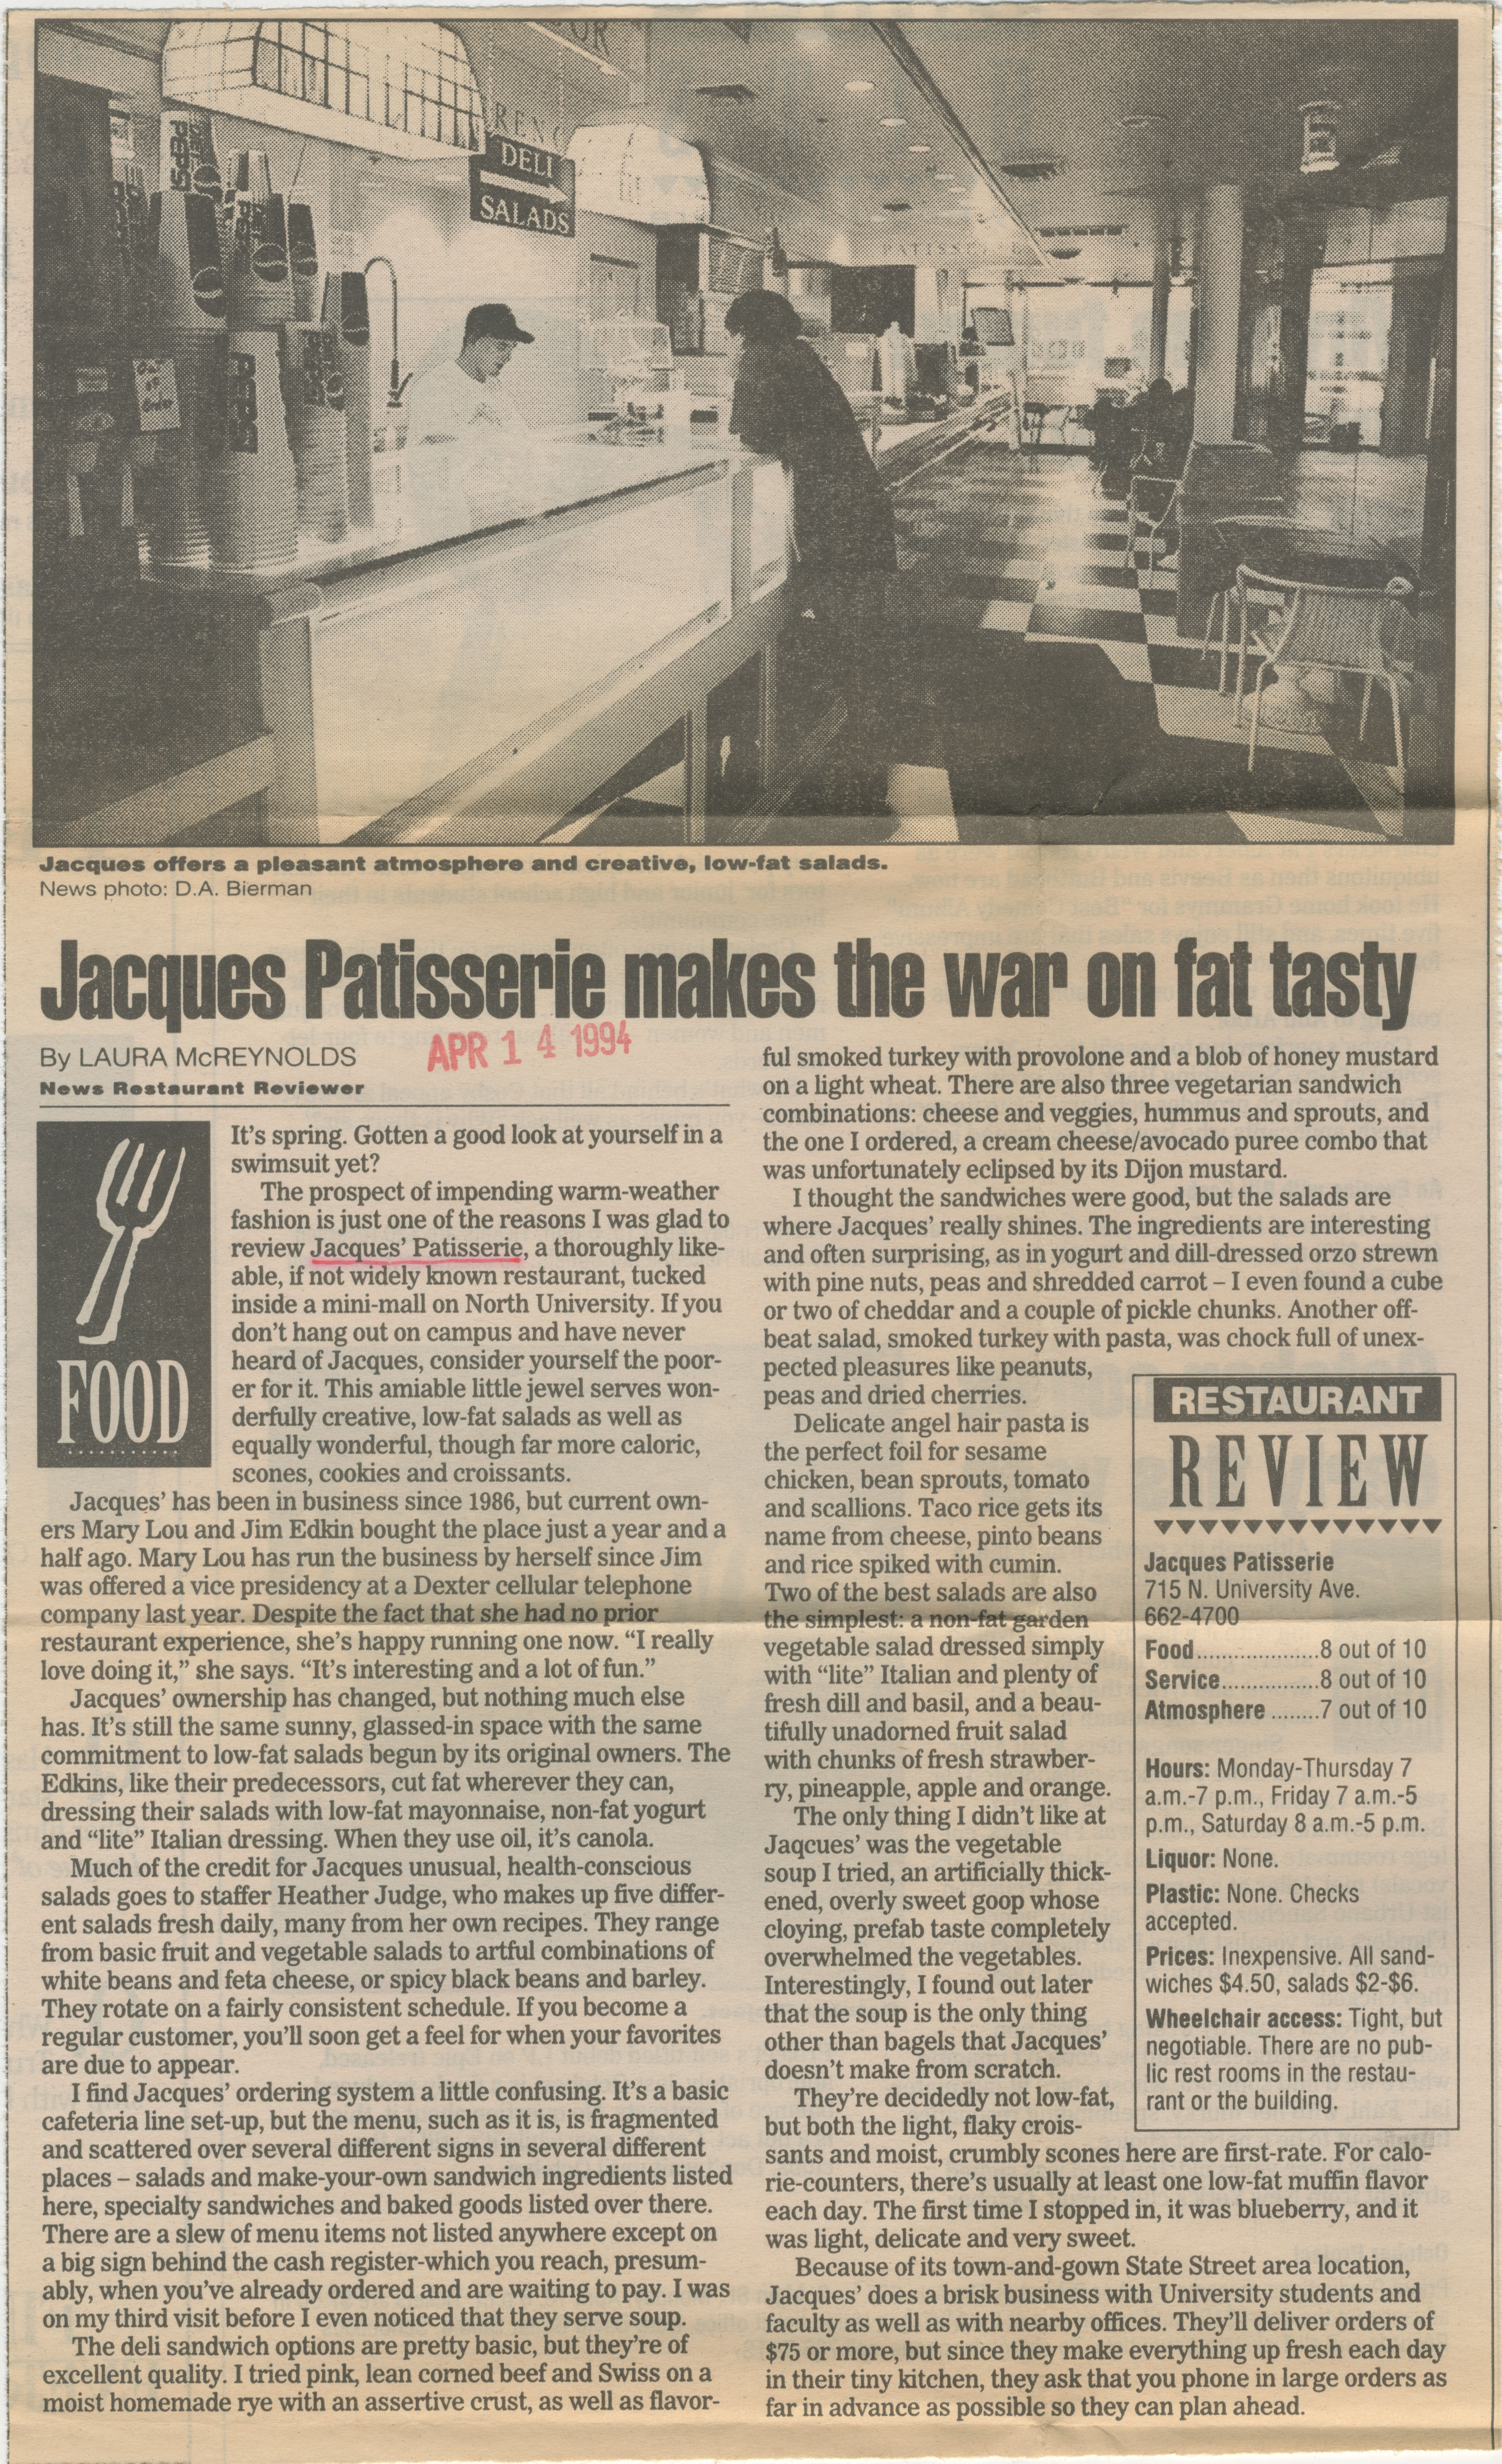 Jacques Patisserie Makes The War On Fat Tasty image